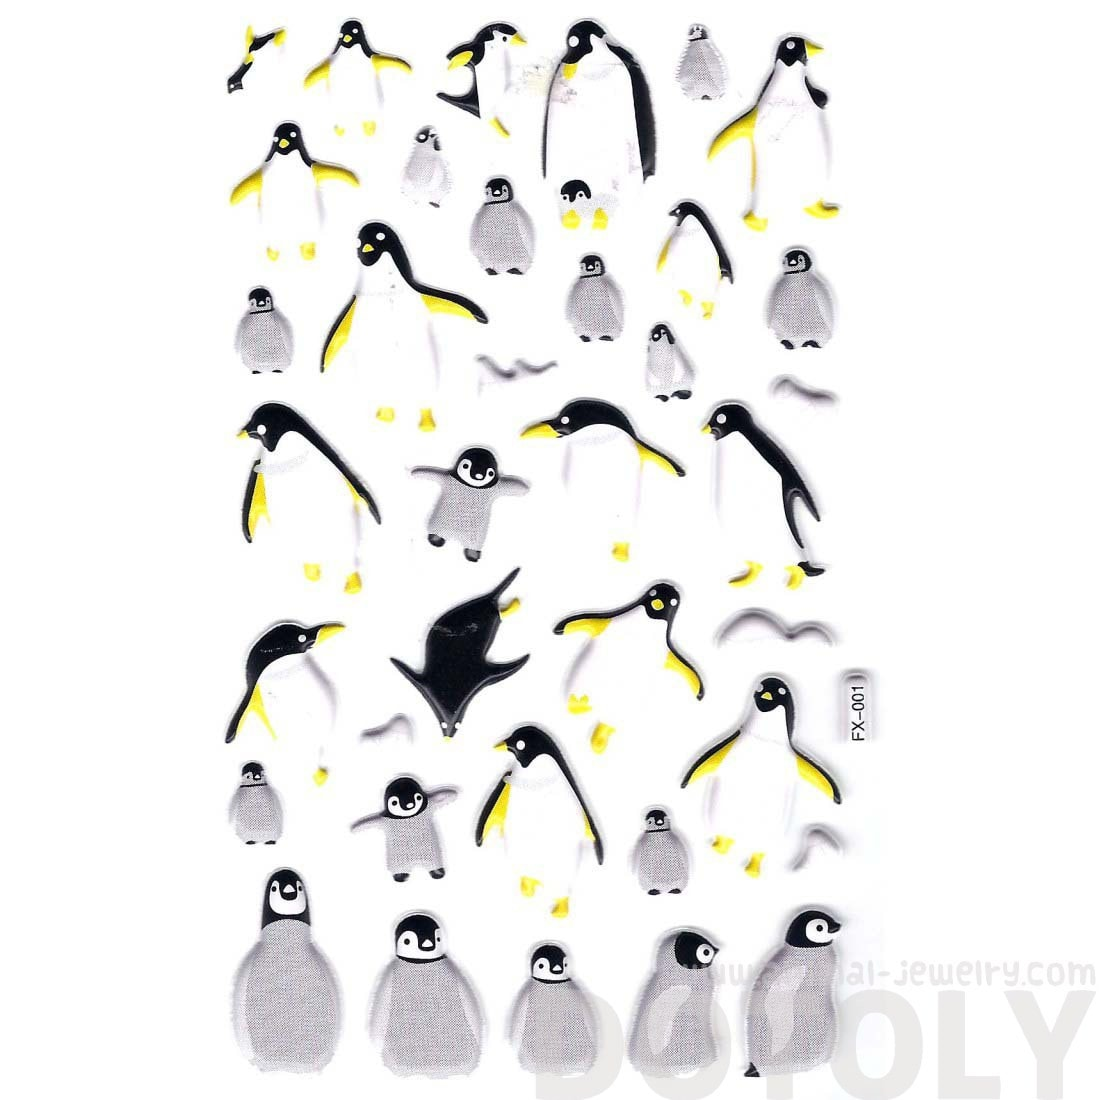 Classic King Penguin Shaped Animal Themed Puffy Decorative Stickers